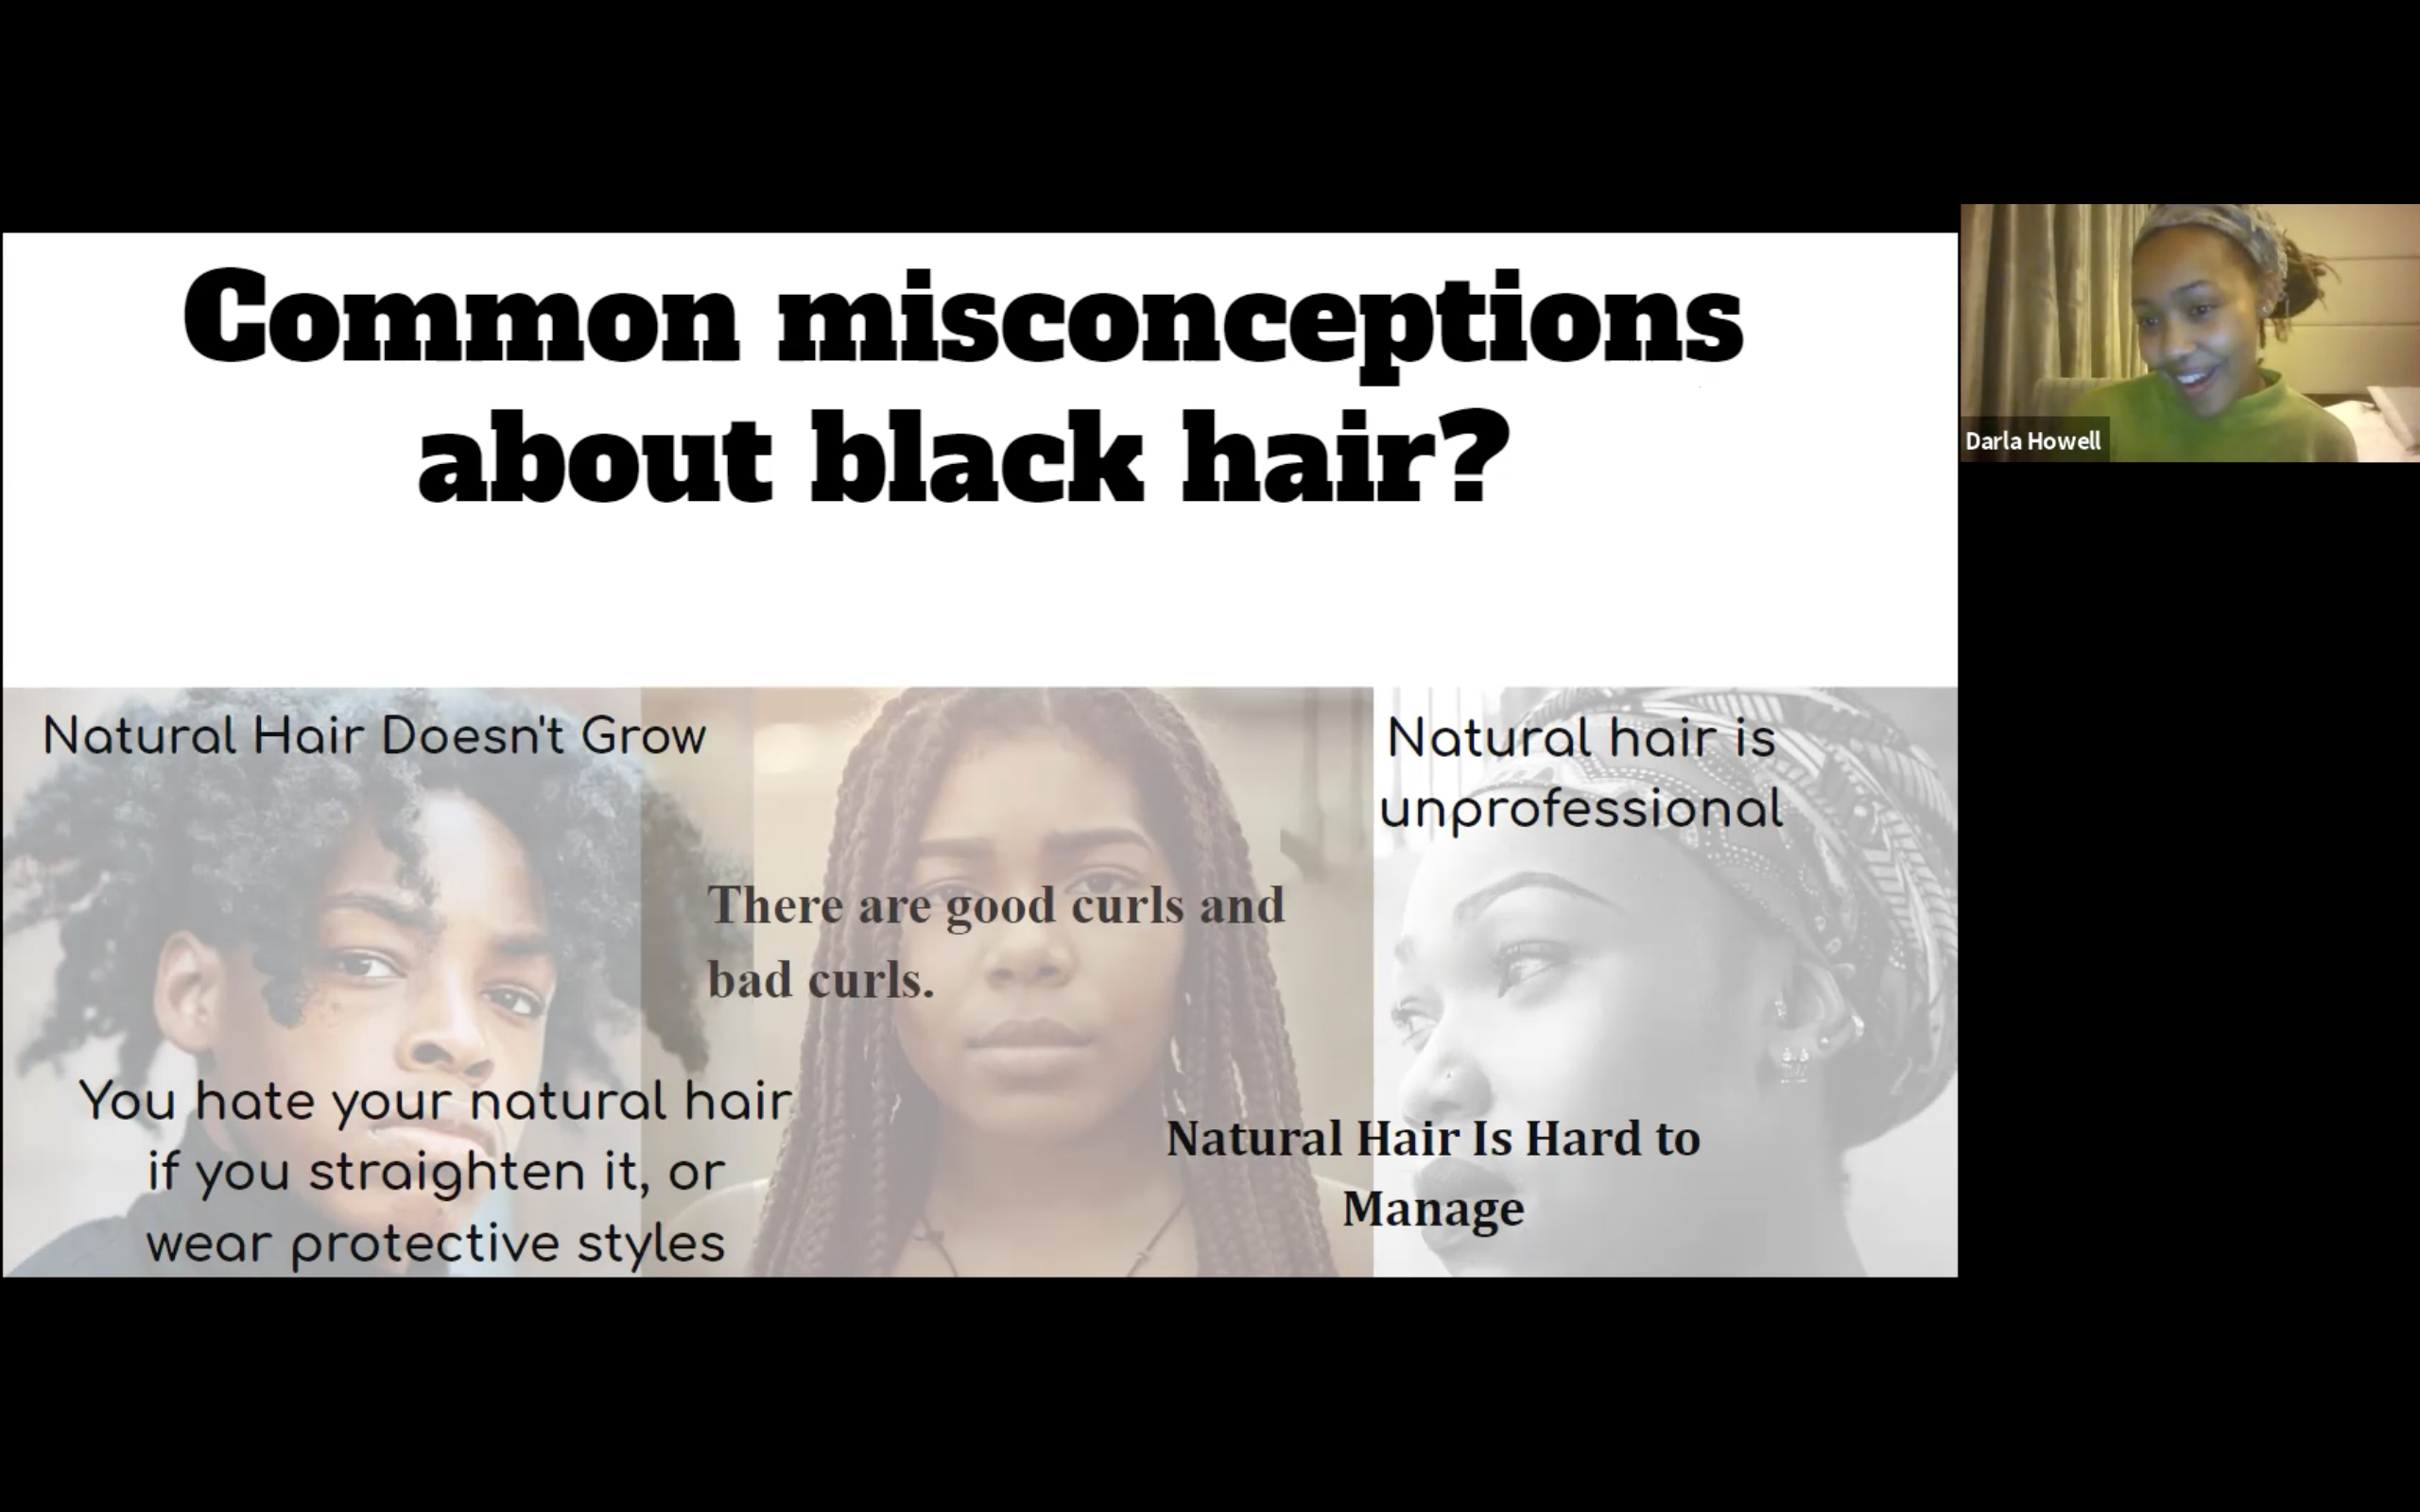 Misconceptions about black hair